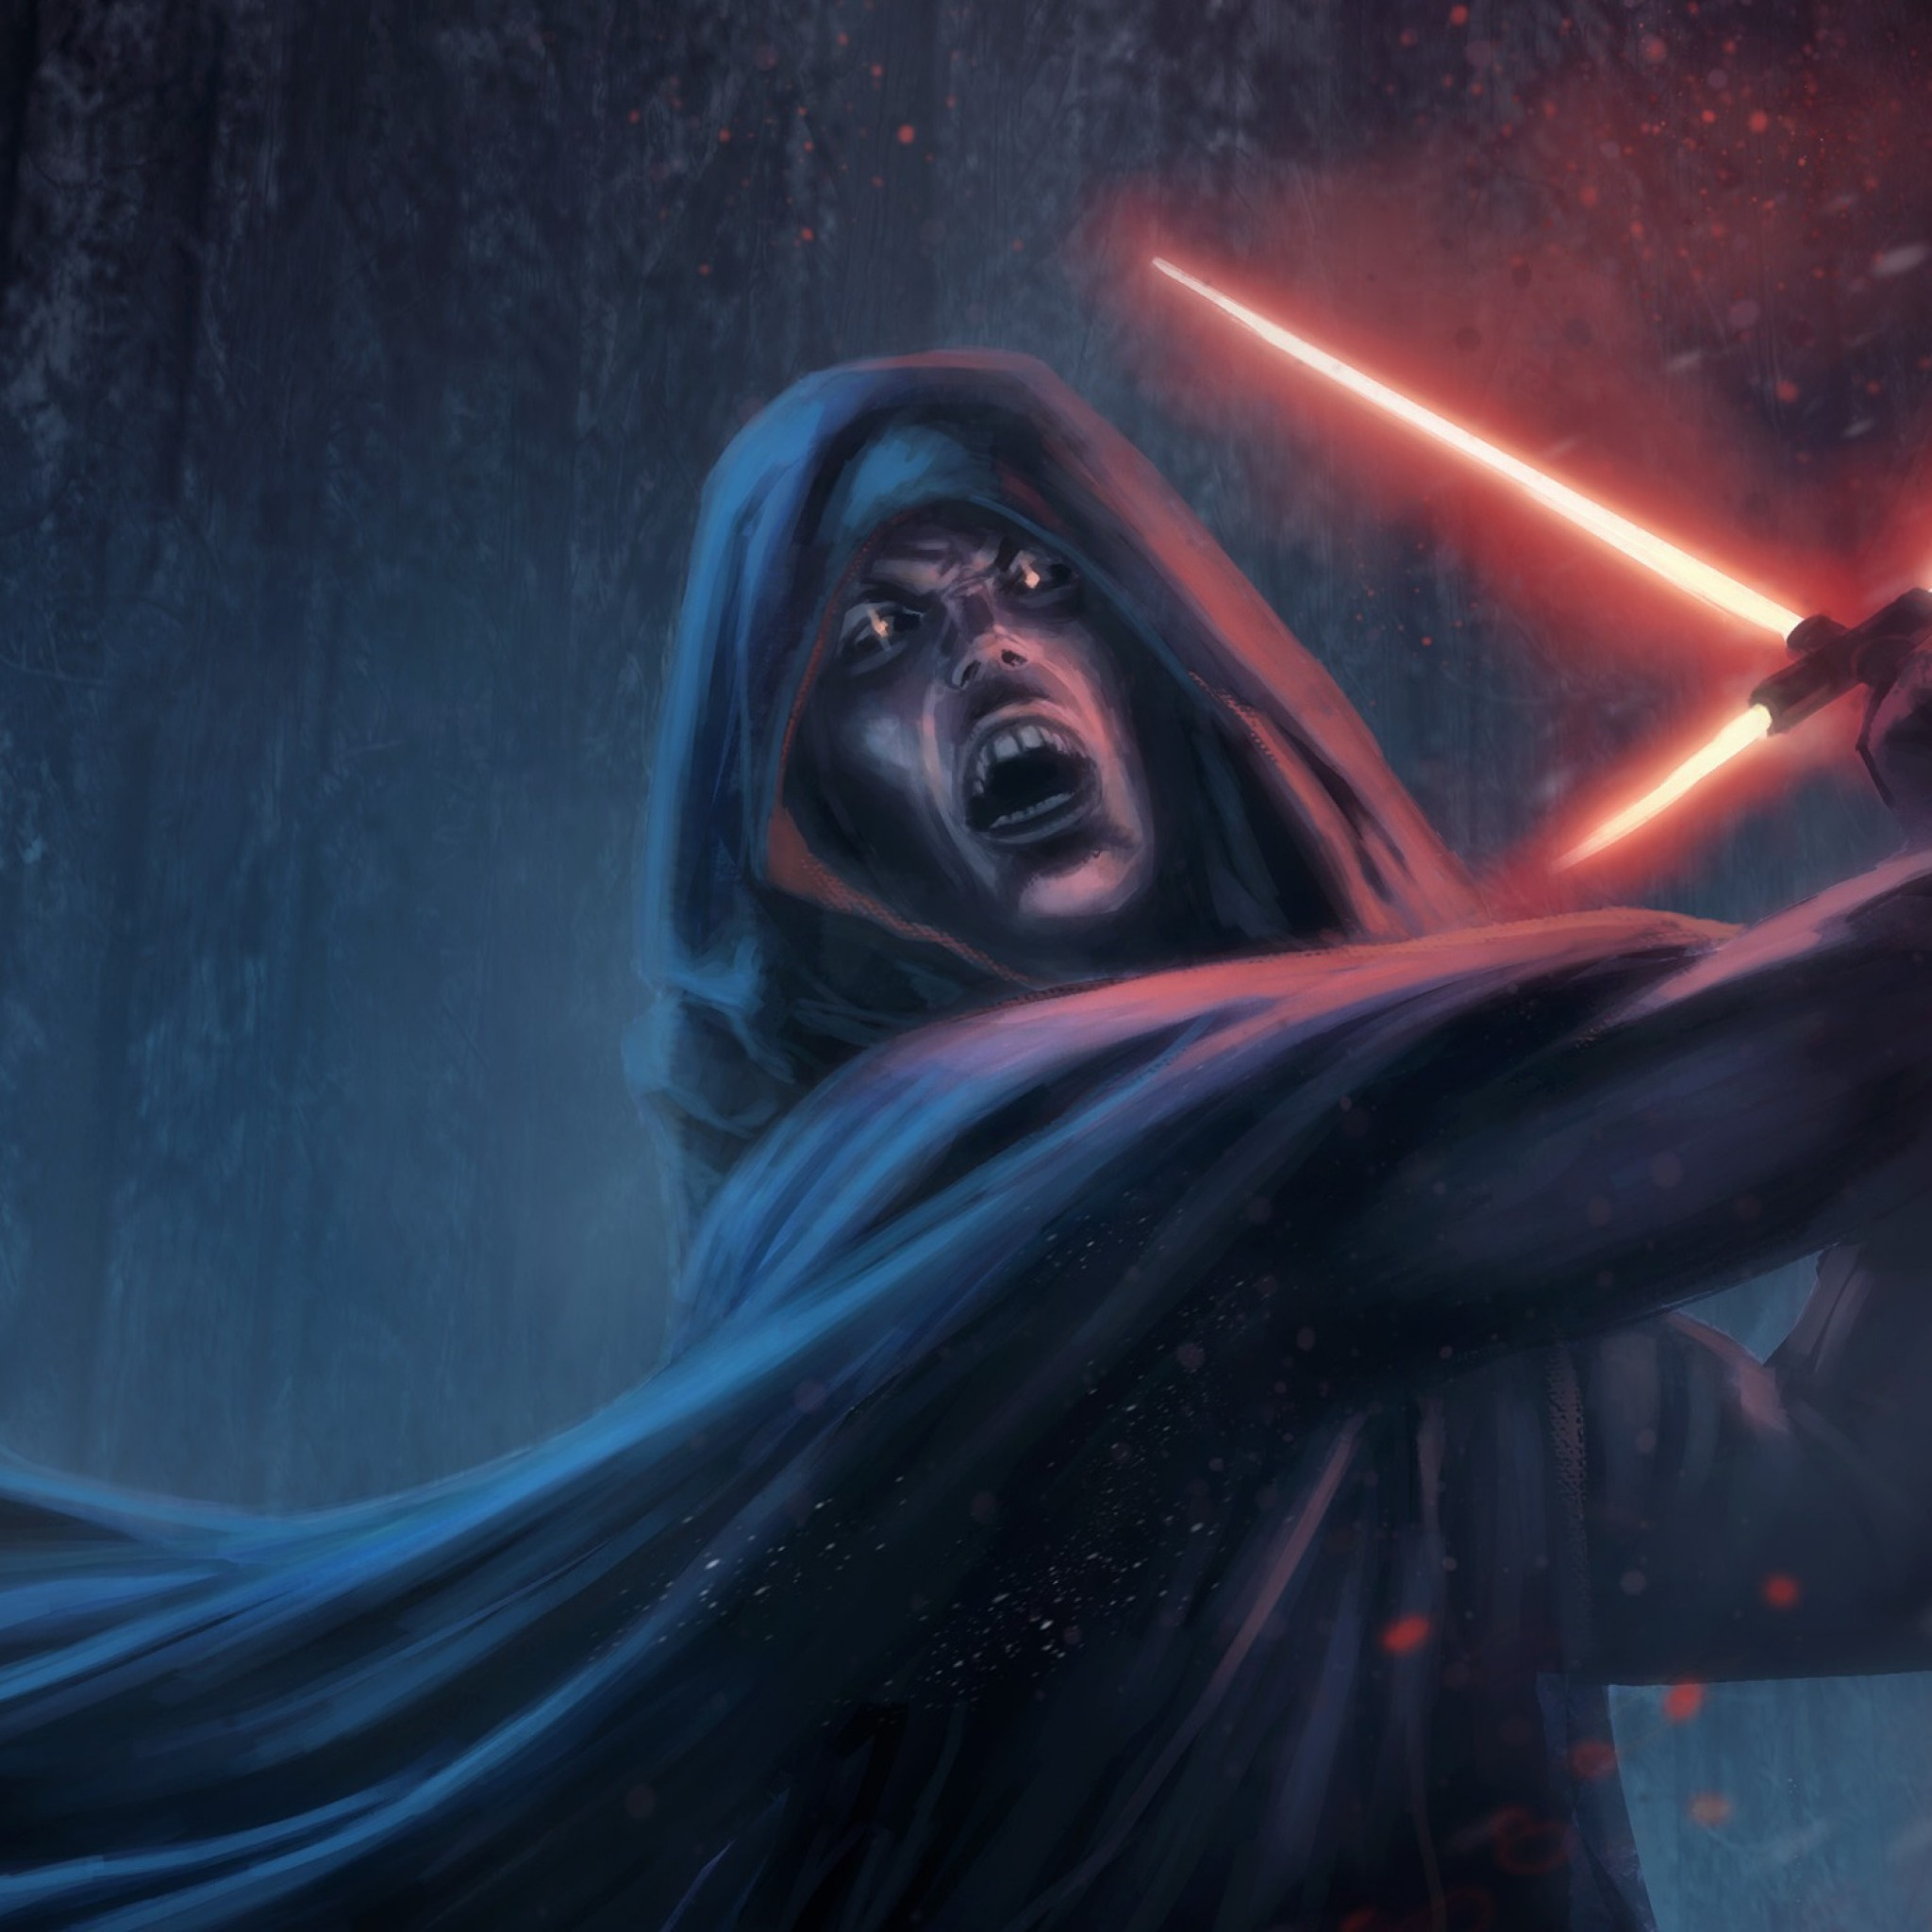 2048x2048 Preview wallpaper star wars episode vii - the force awakens, sith,  lightsaber